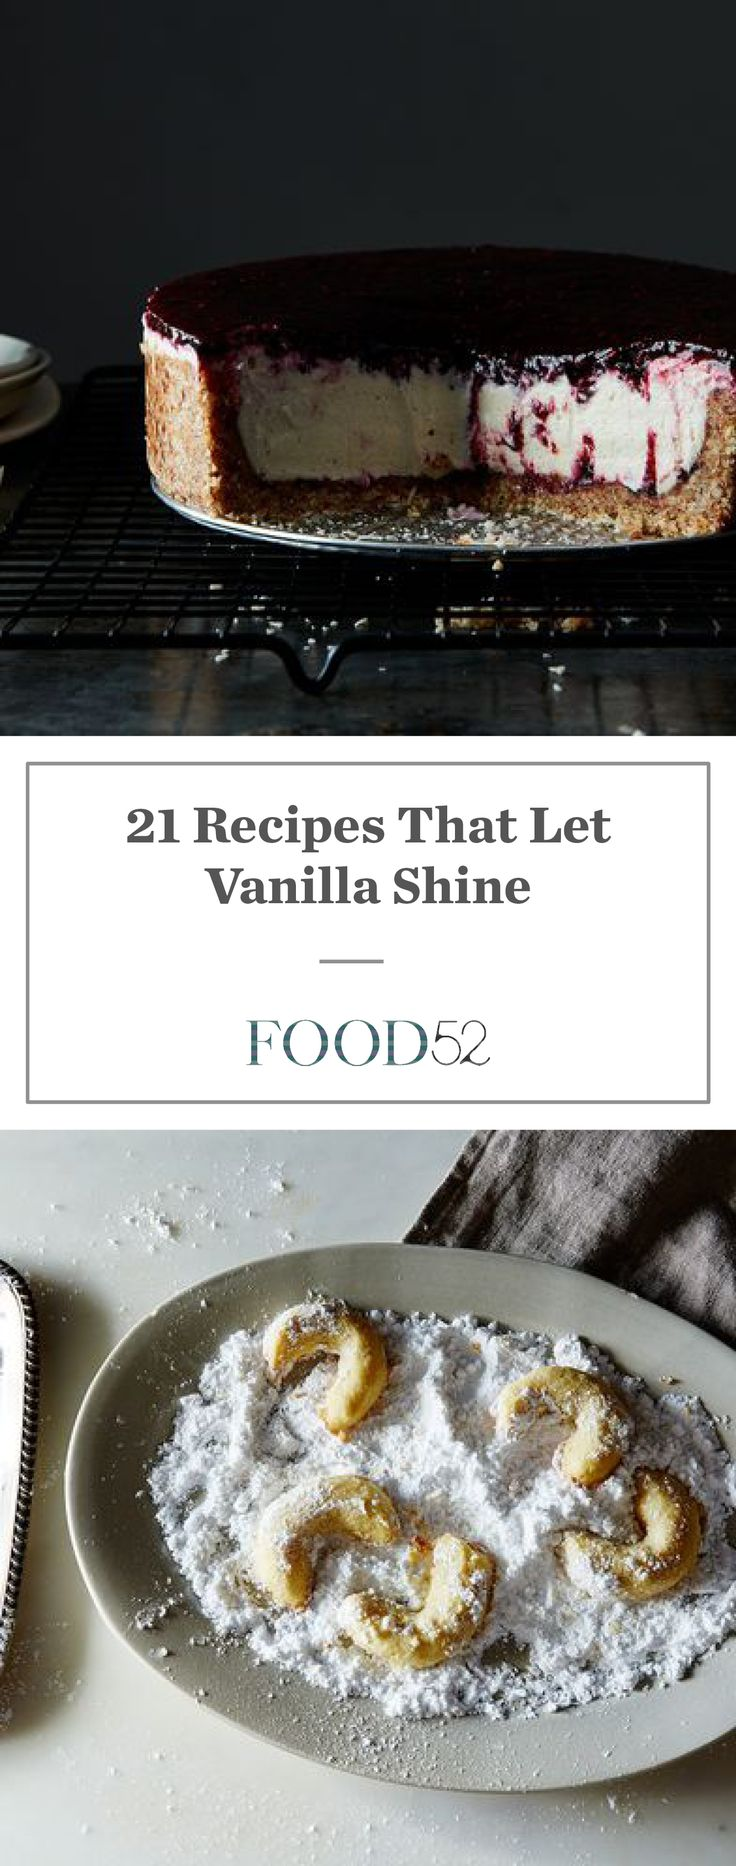 210 best dessert recipe collections images on pinterest mason jar 13 recipes that let vanilla shine recipe collections food 52 forumfinder Images